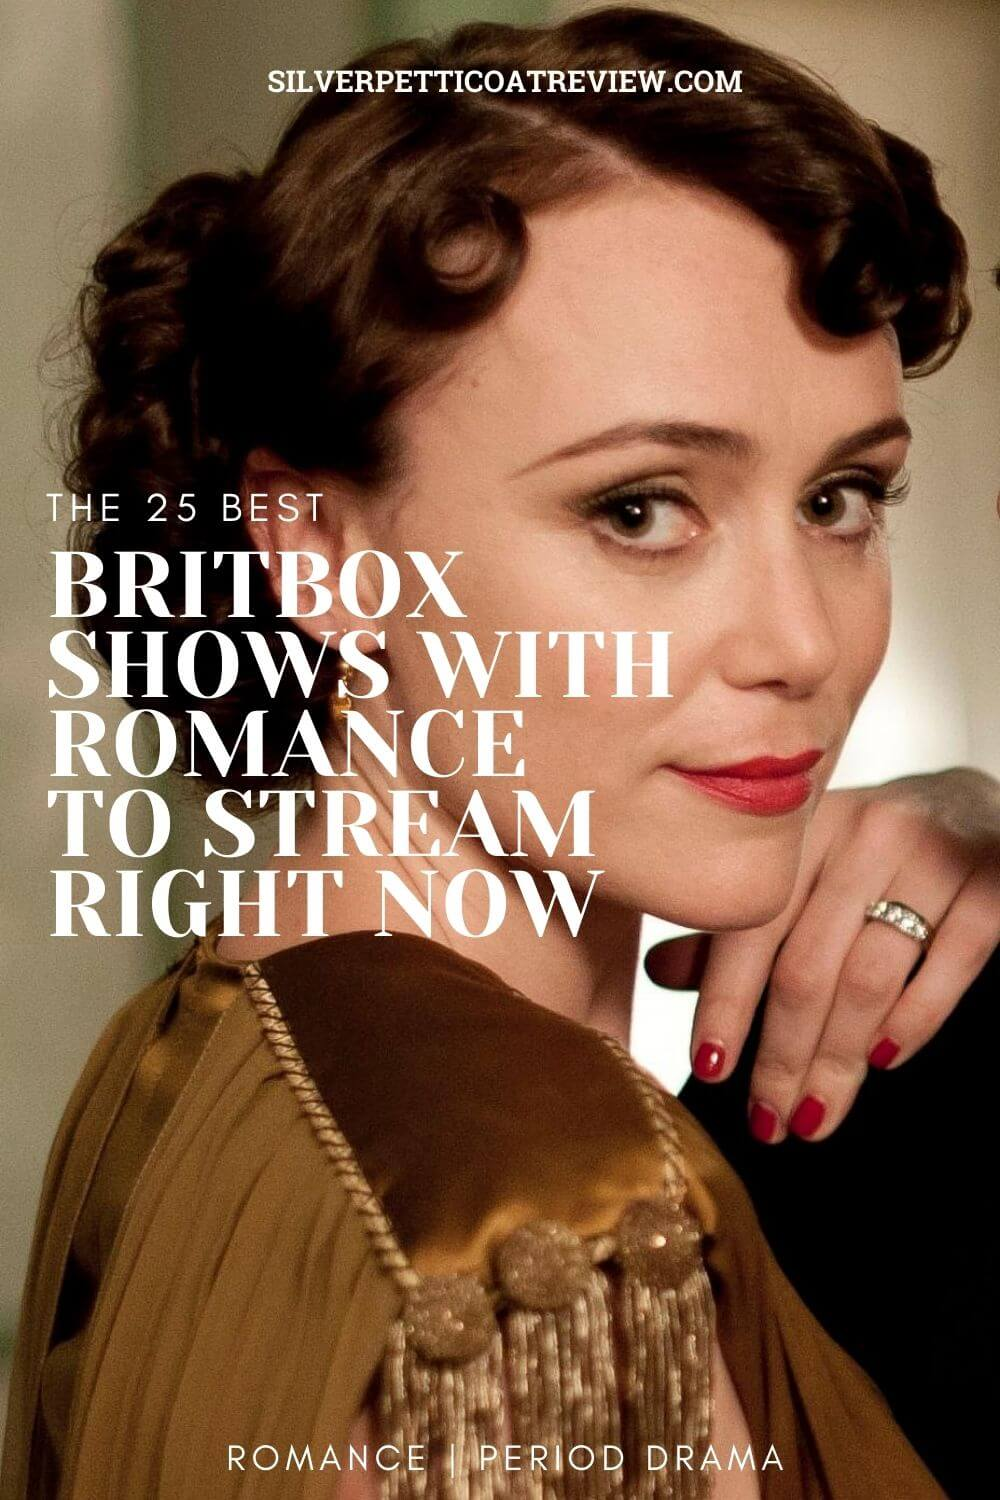 The 25 Best BritBox Shows with Romance to Stream Right Now - Pinterest image